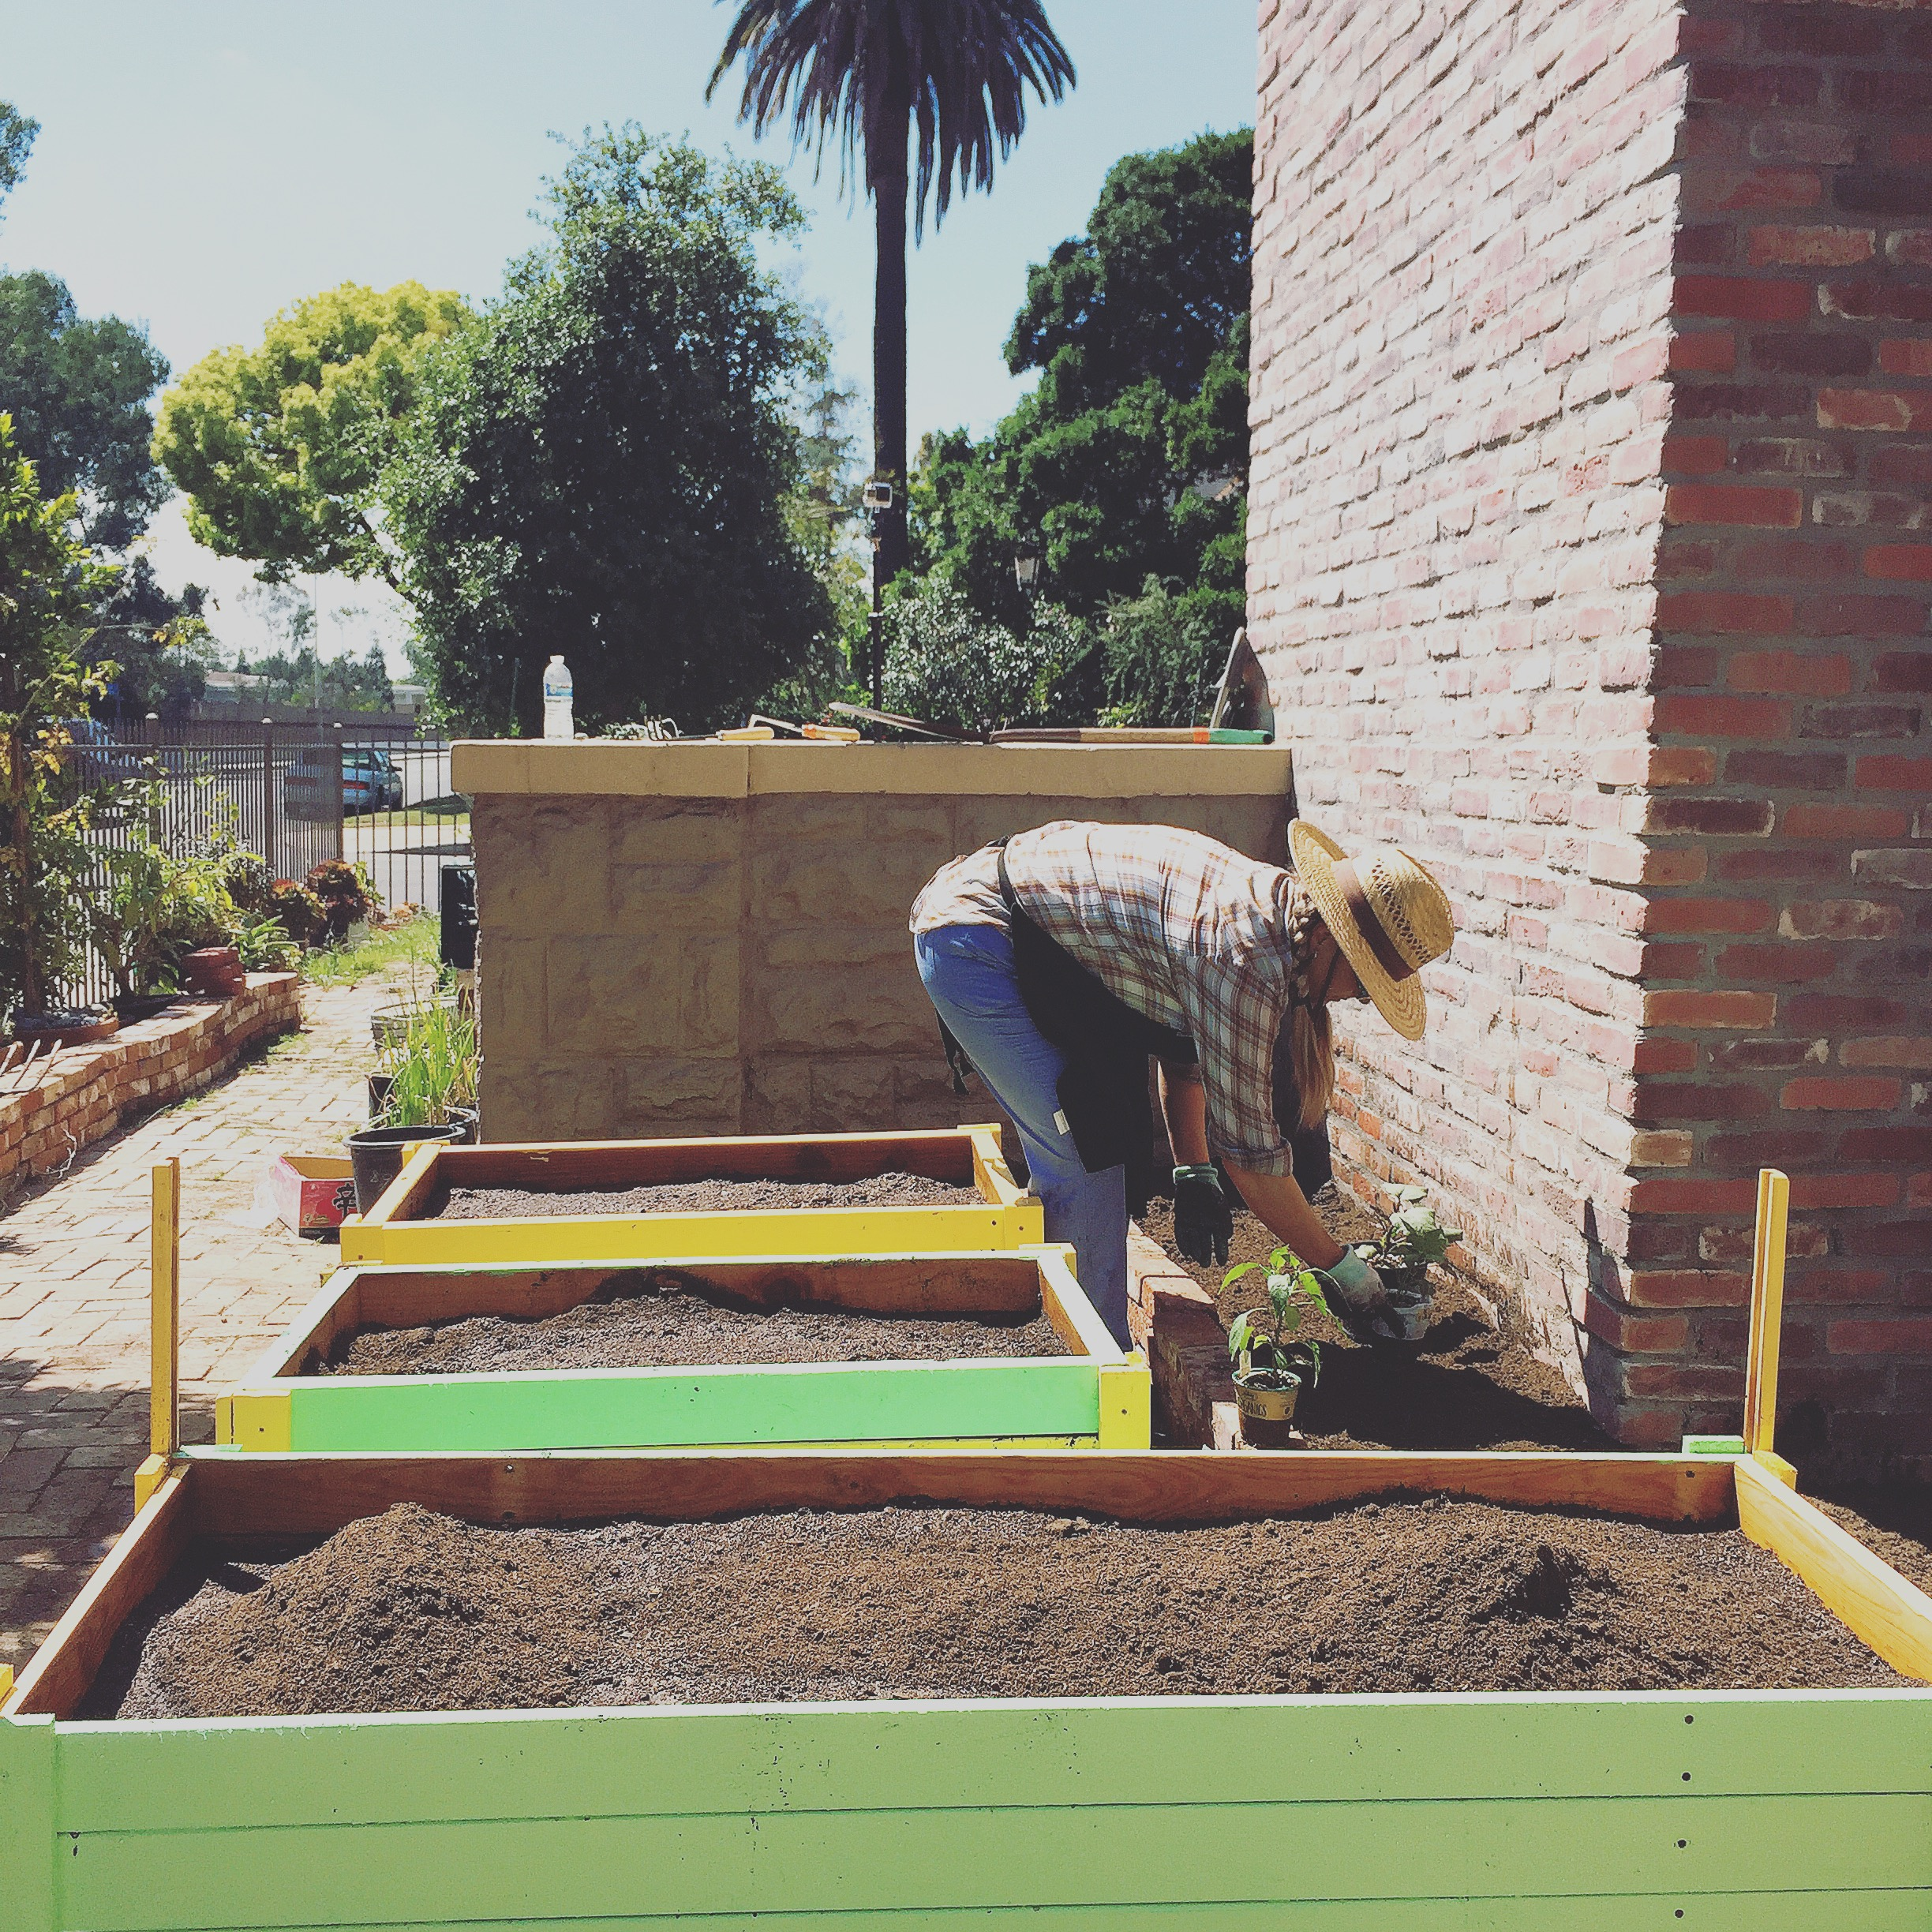 Time lapse of making the Raised beds